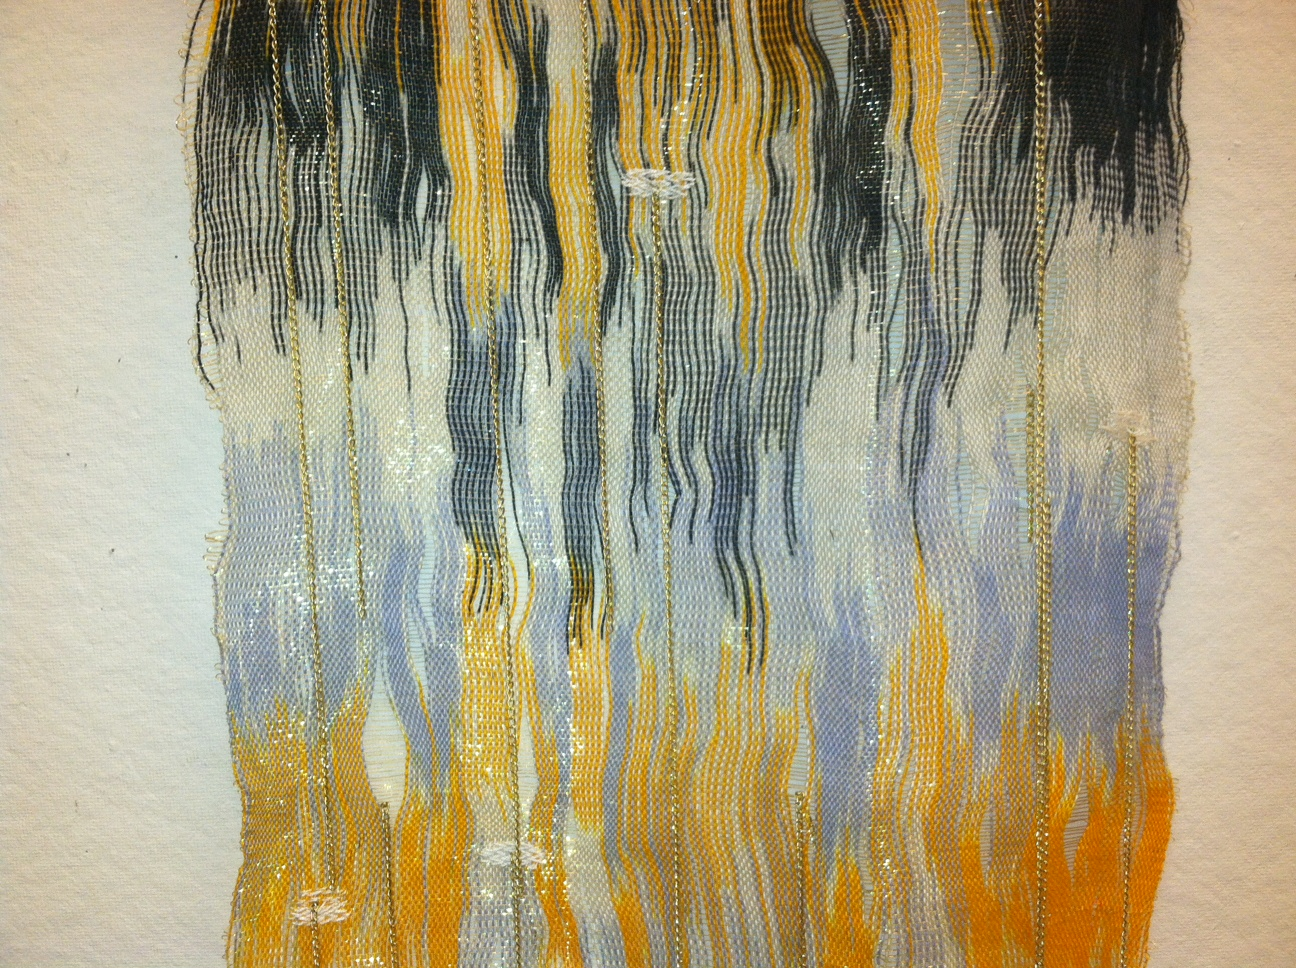 Wall Hanging, detail, Lillian Roberts-Gevalt, 2013